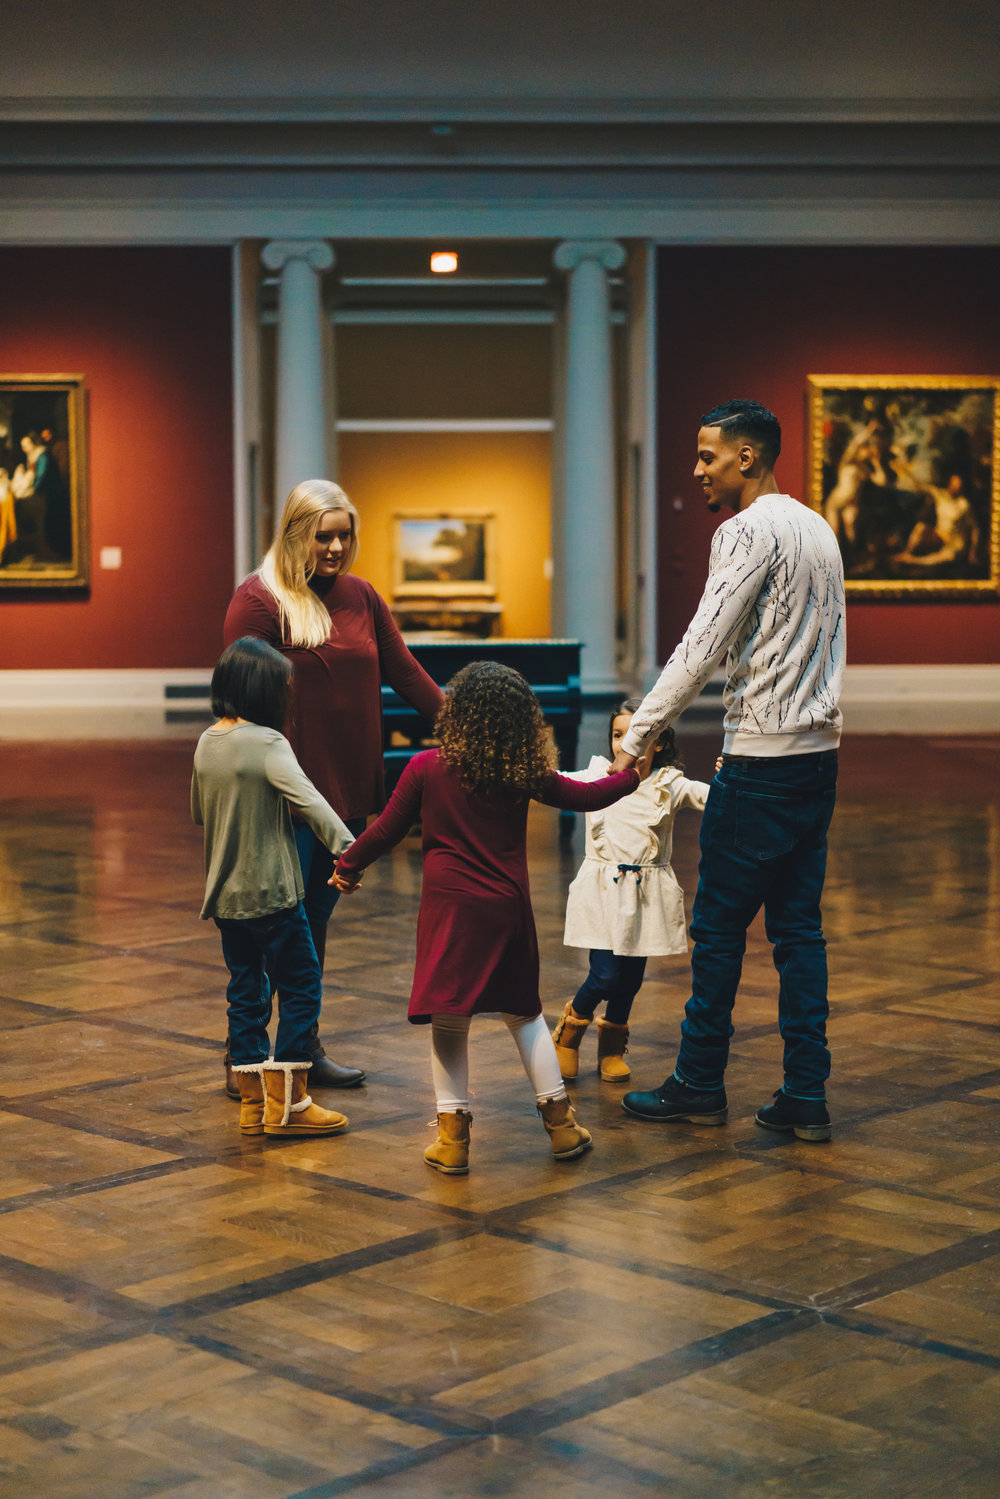 Nashville Tennessee Photographer- Art Museum Family Session 2